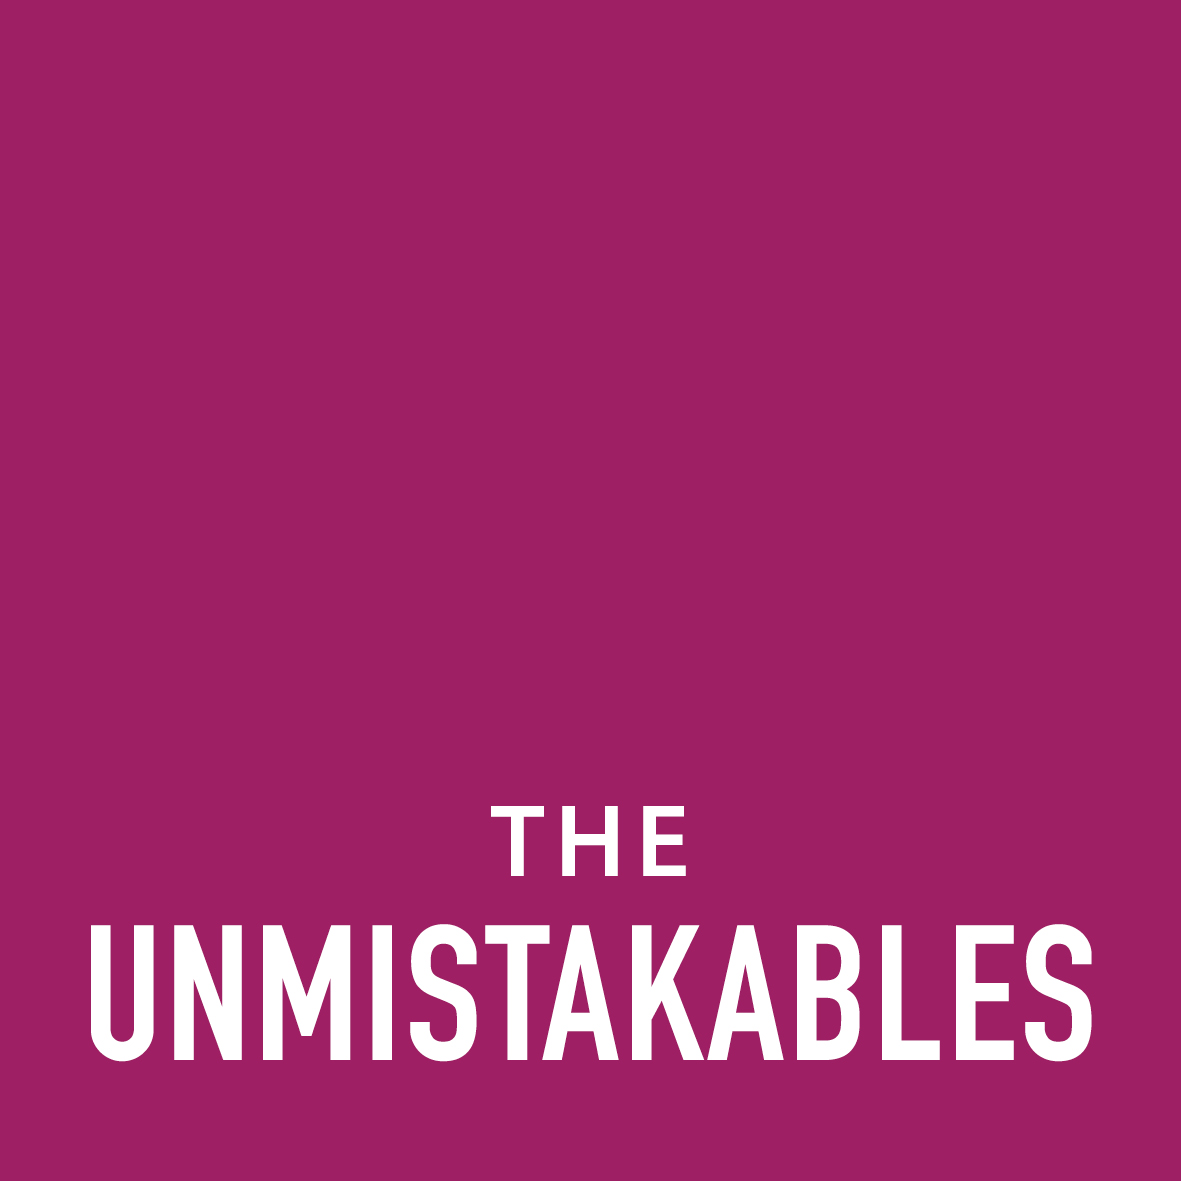 The Unmistakables | Made Up of Minorities